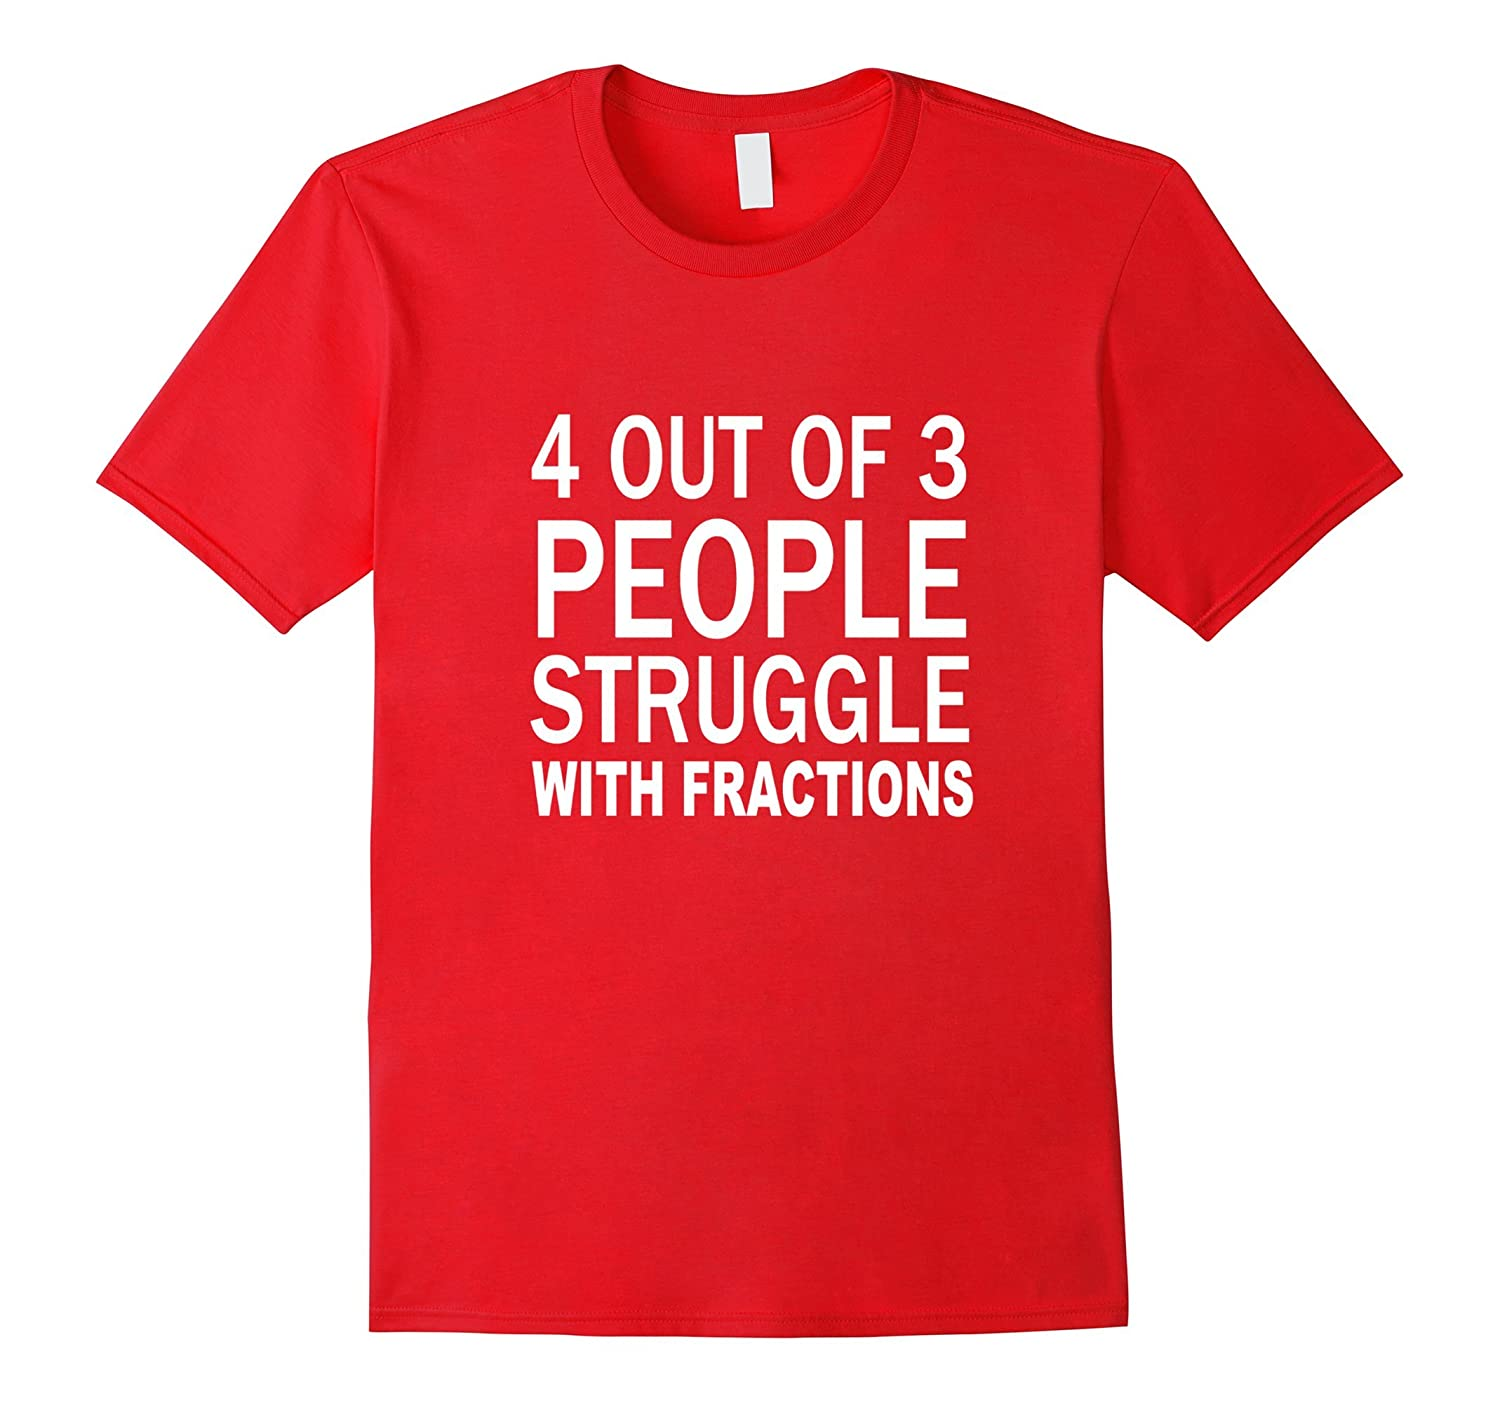 4 out of 3 People Struggle with Fractions T-shirt about Math-Art